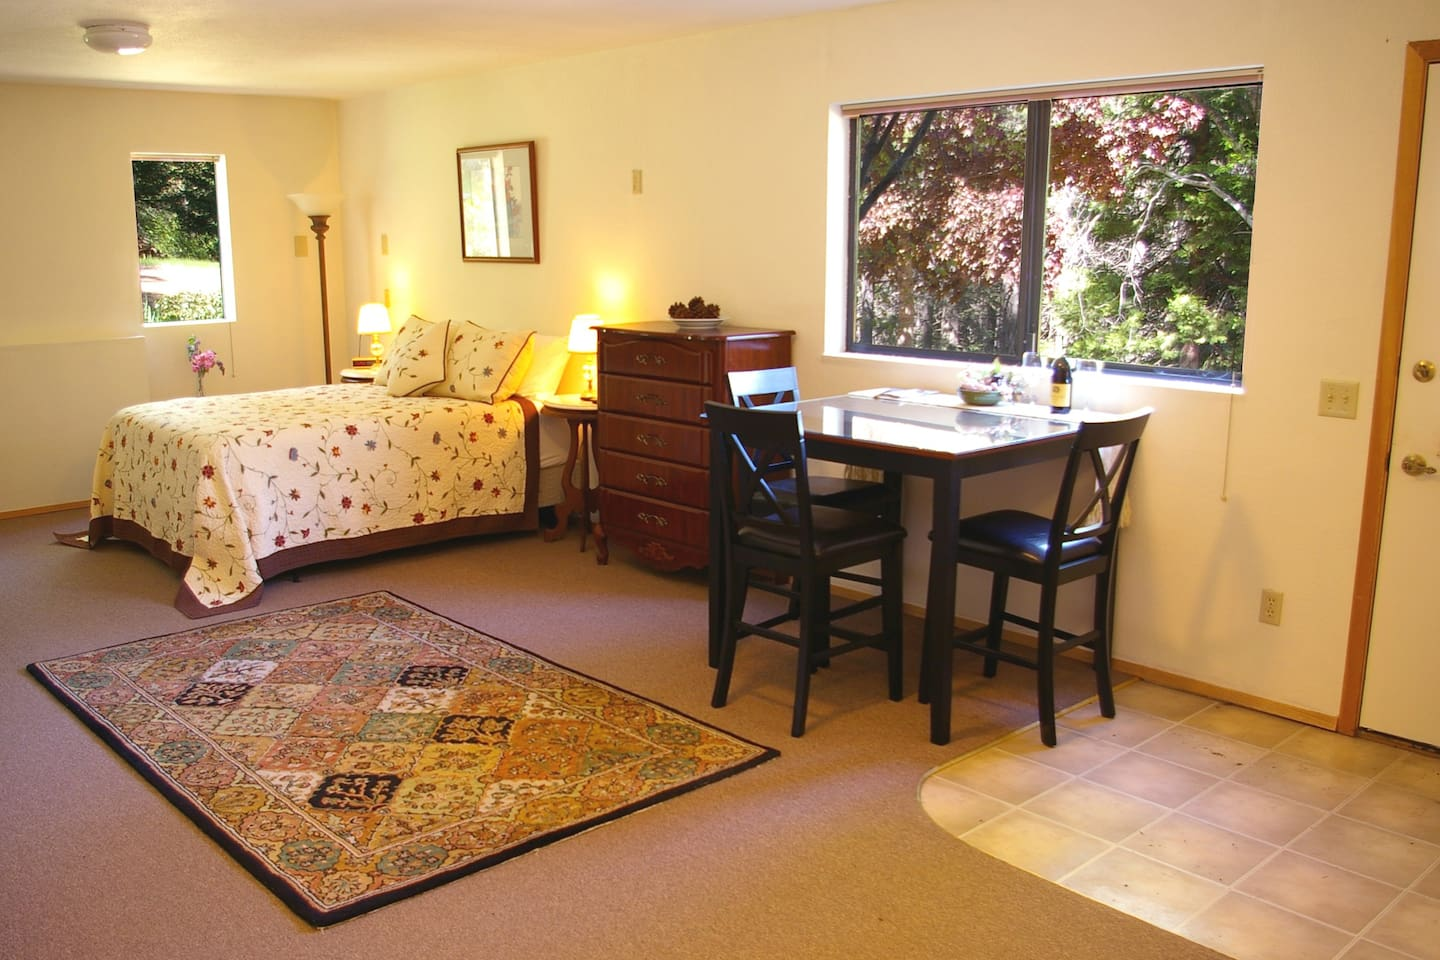 Mt. Shasta Forest Retreat. Here is a view of the interior of the apartment.